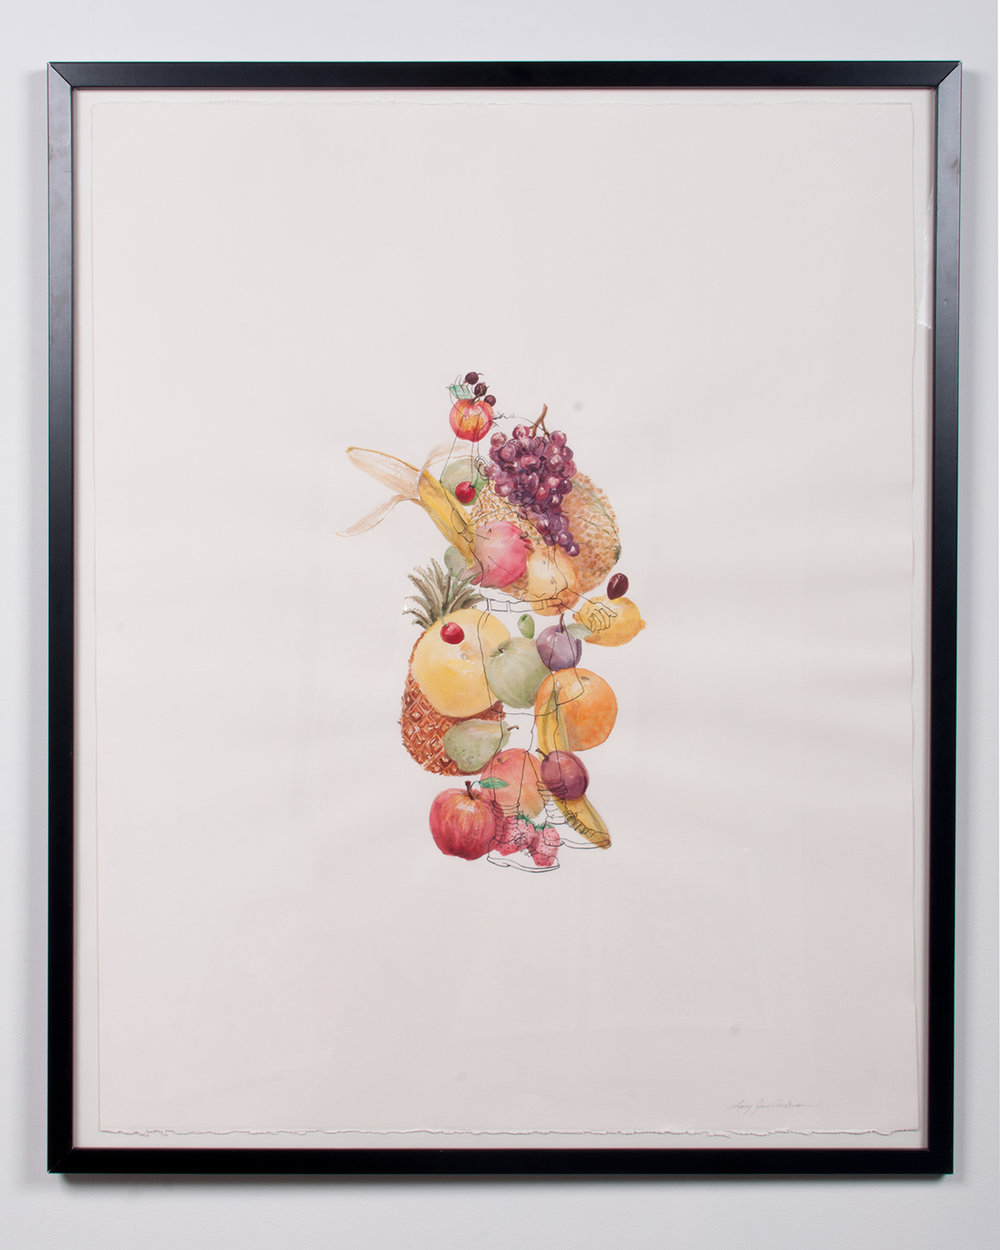 Fruit-watercolor-and-colored-pencil-45.75-x-37.5-LJA-160G.jpg